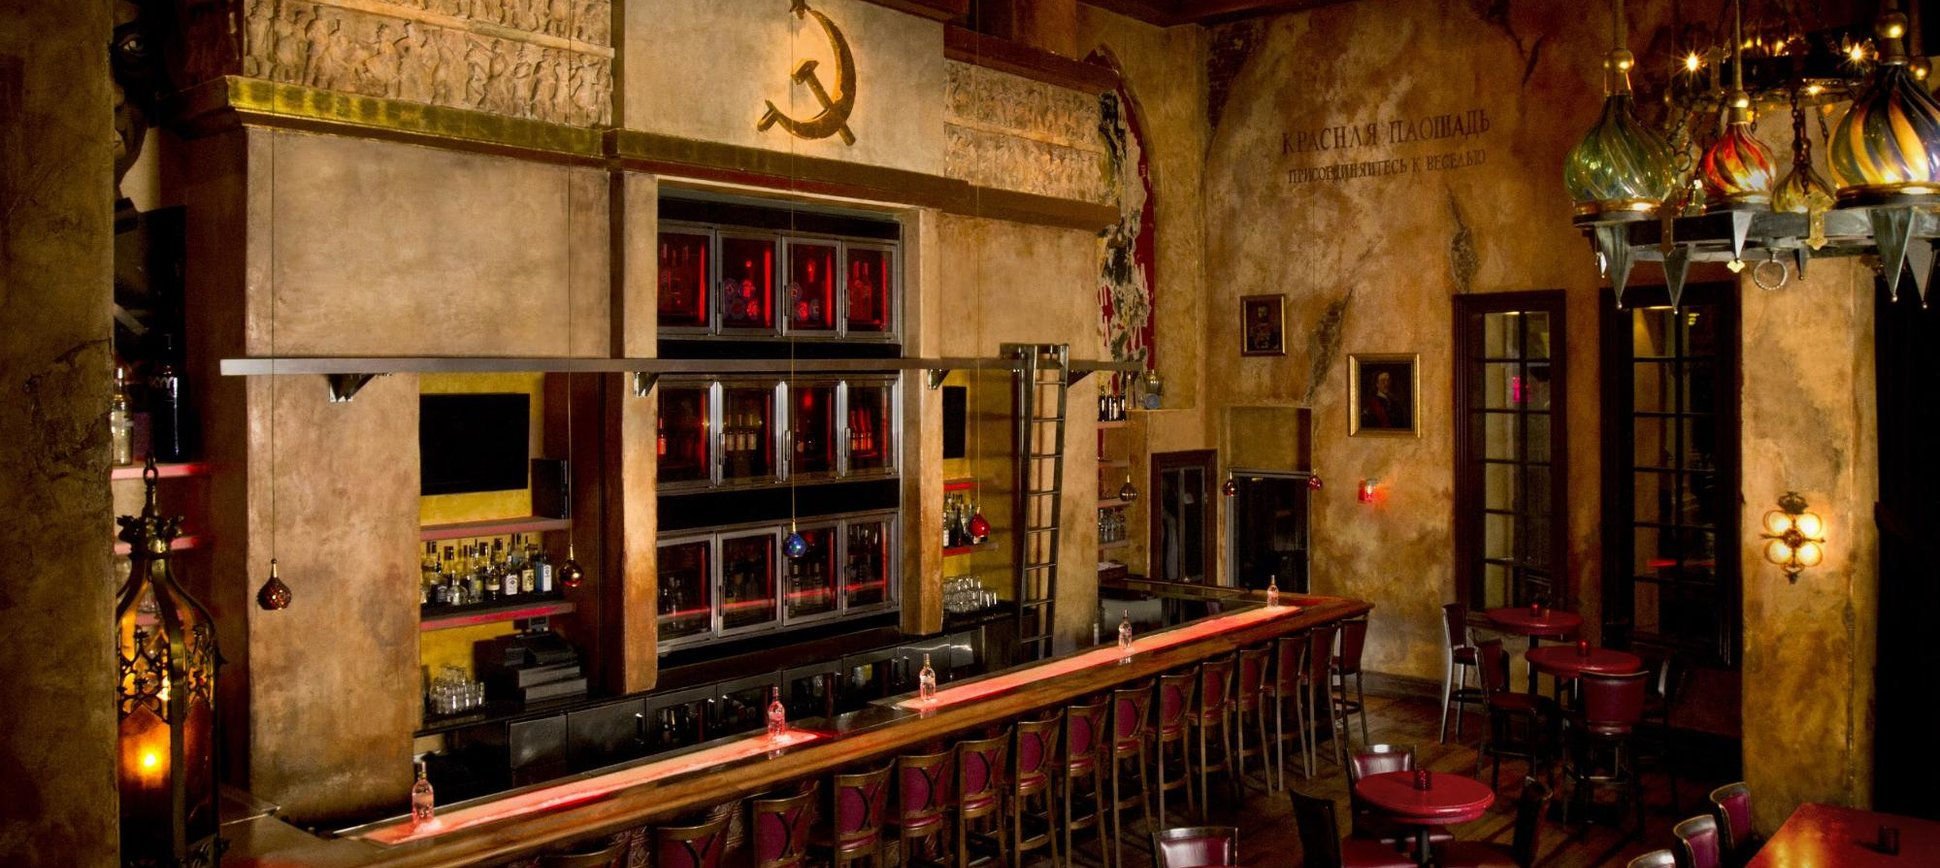 The Best Themed Bars in Las Vegas